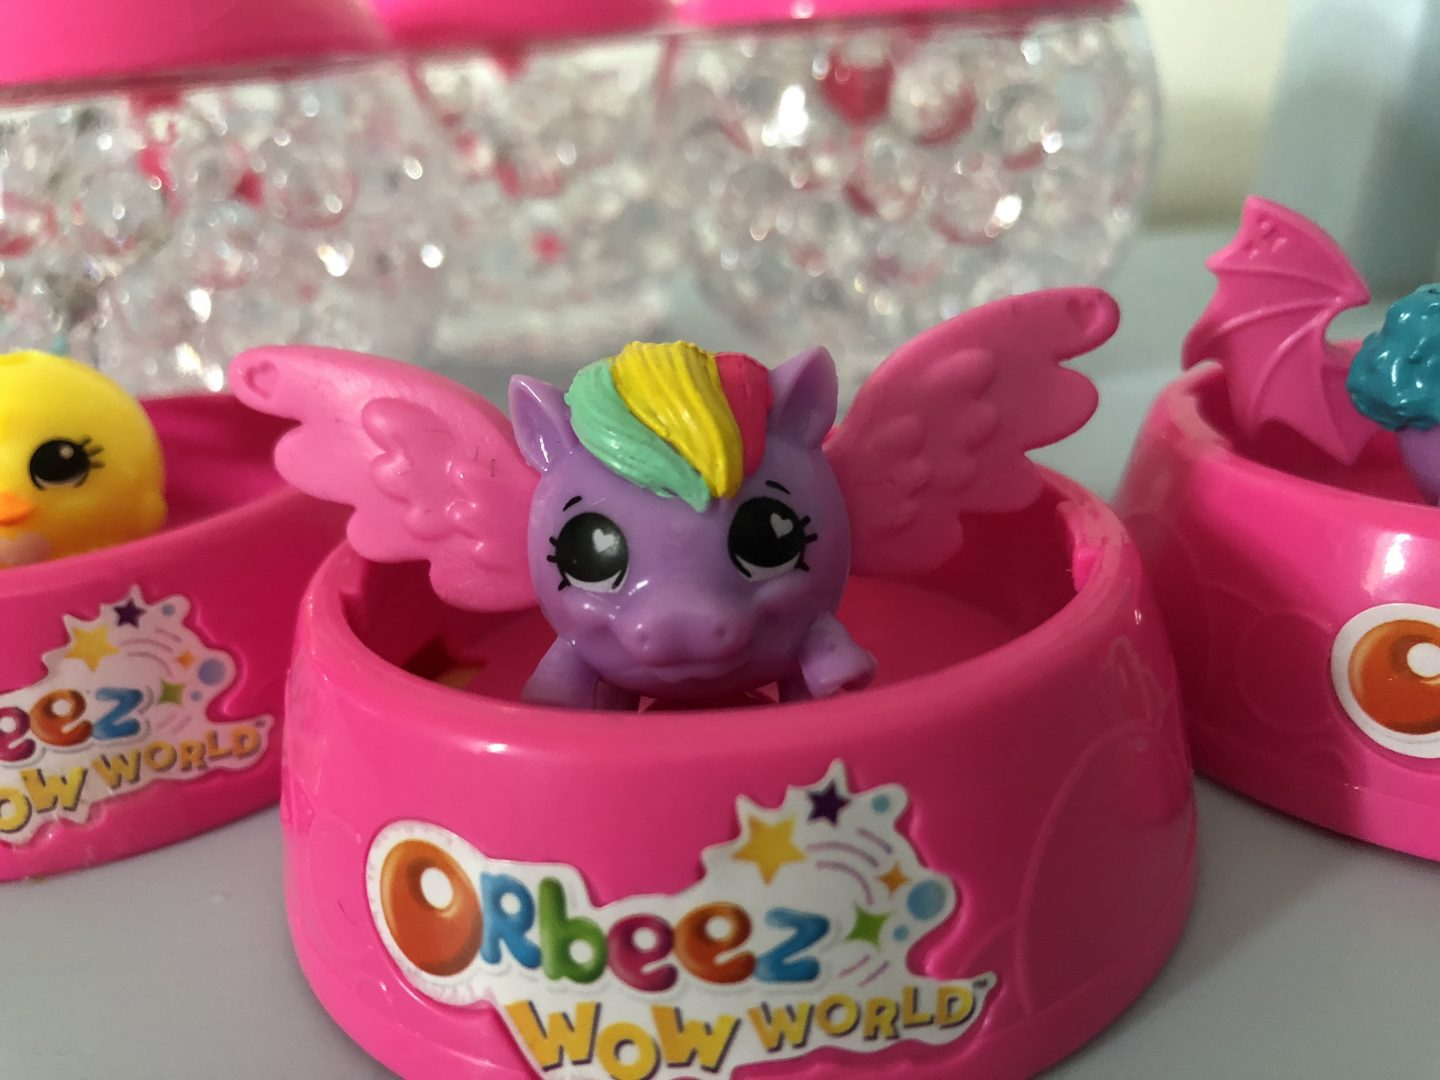 Character Creative Oonies and Orbeez Review